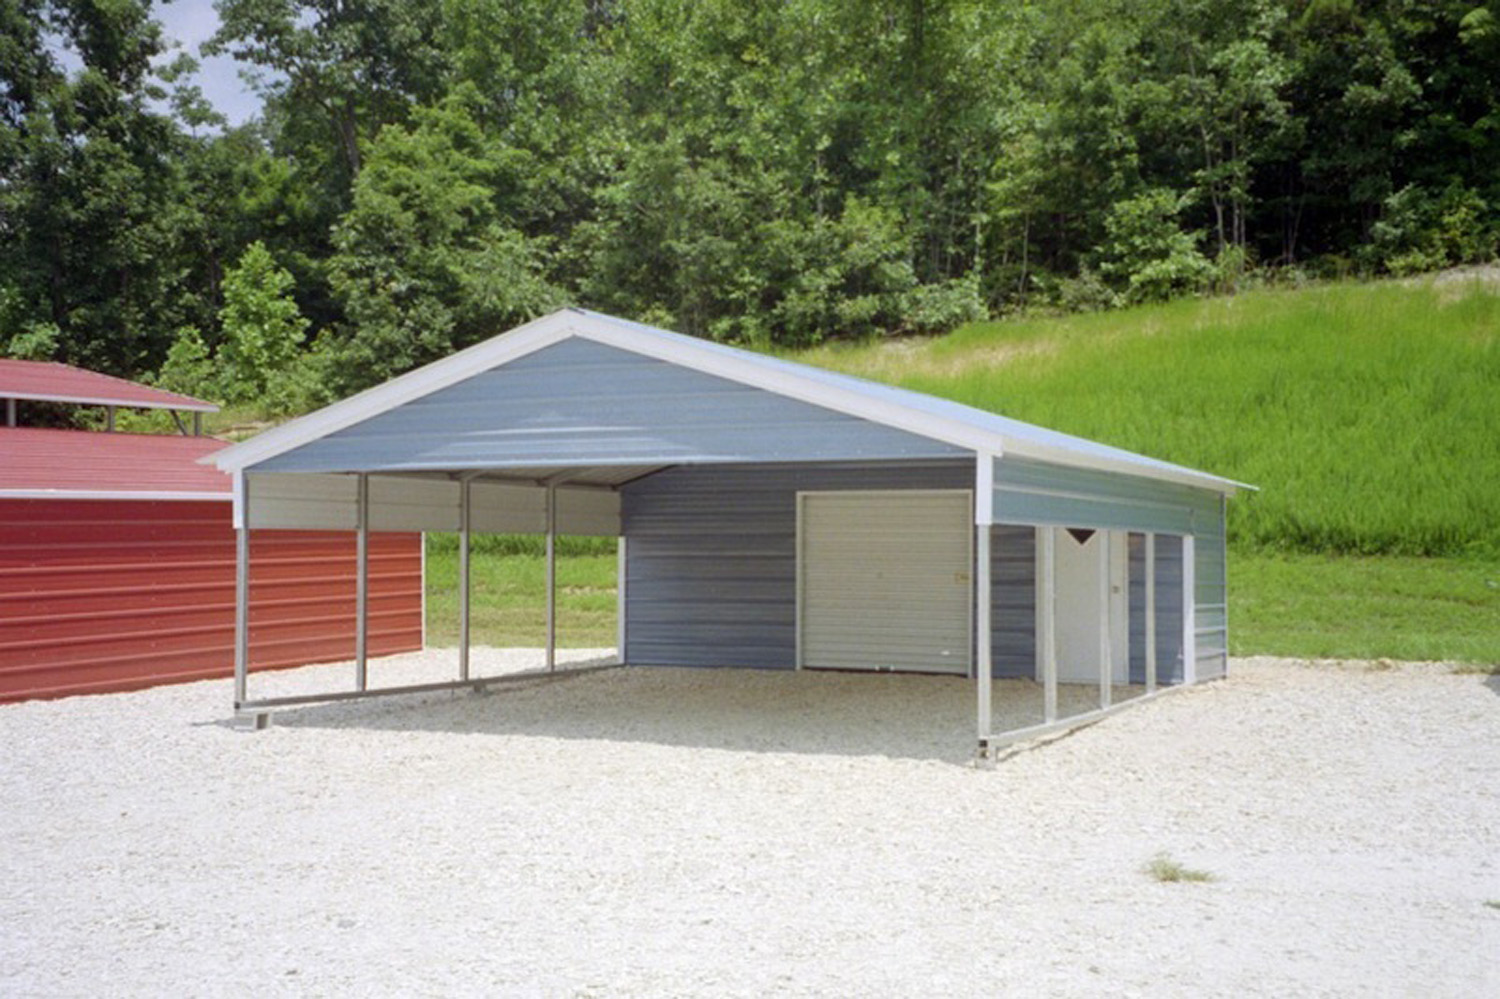 Steel carport kits metal carport kits 595 for Carport one